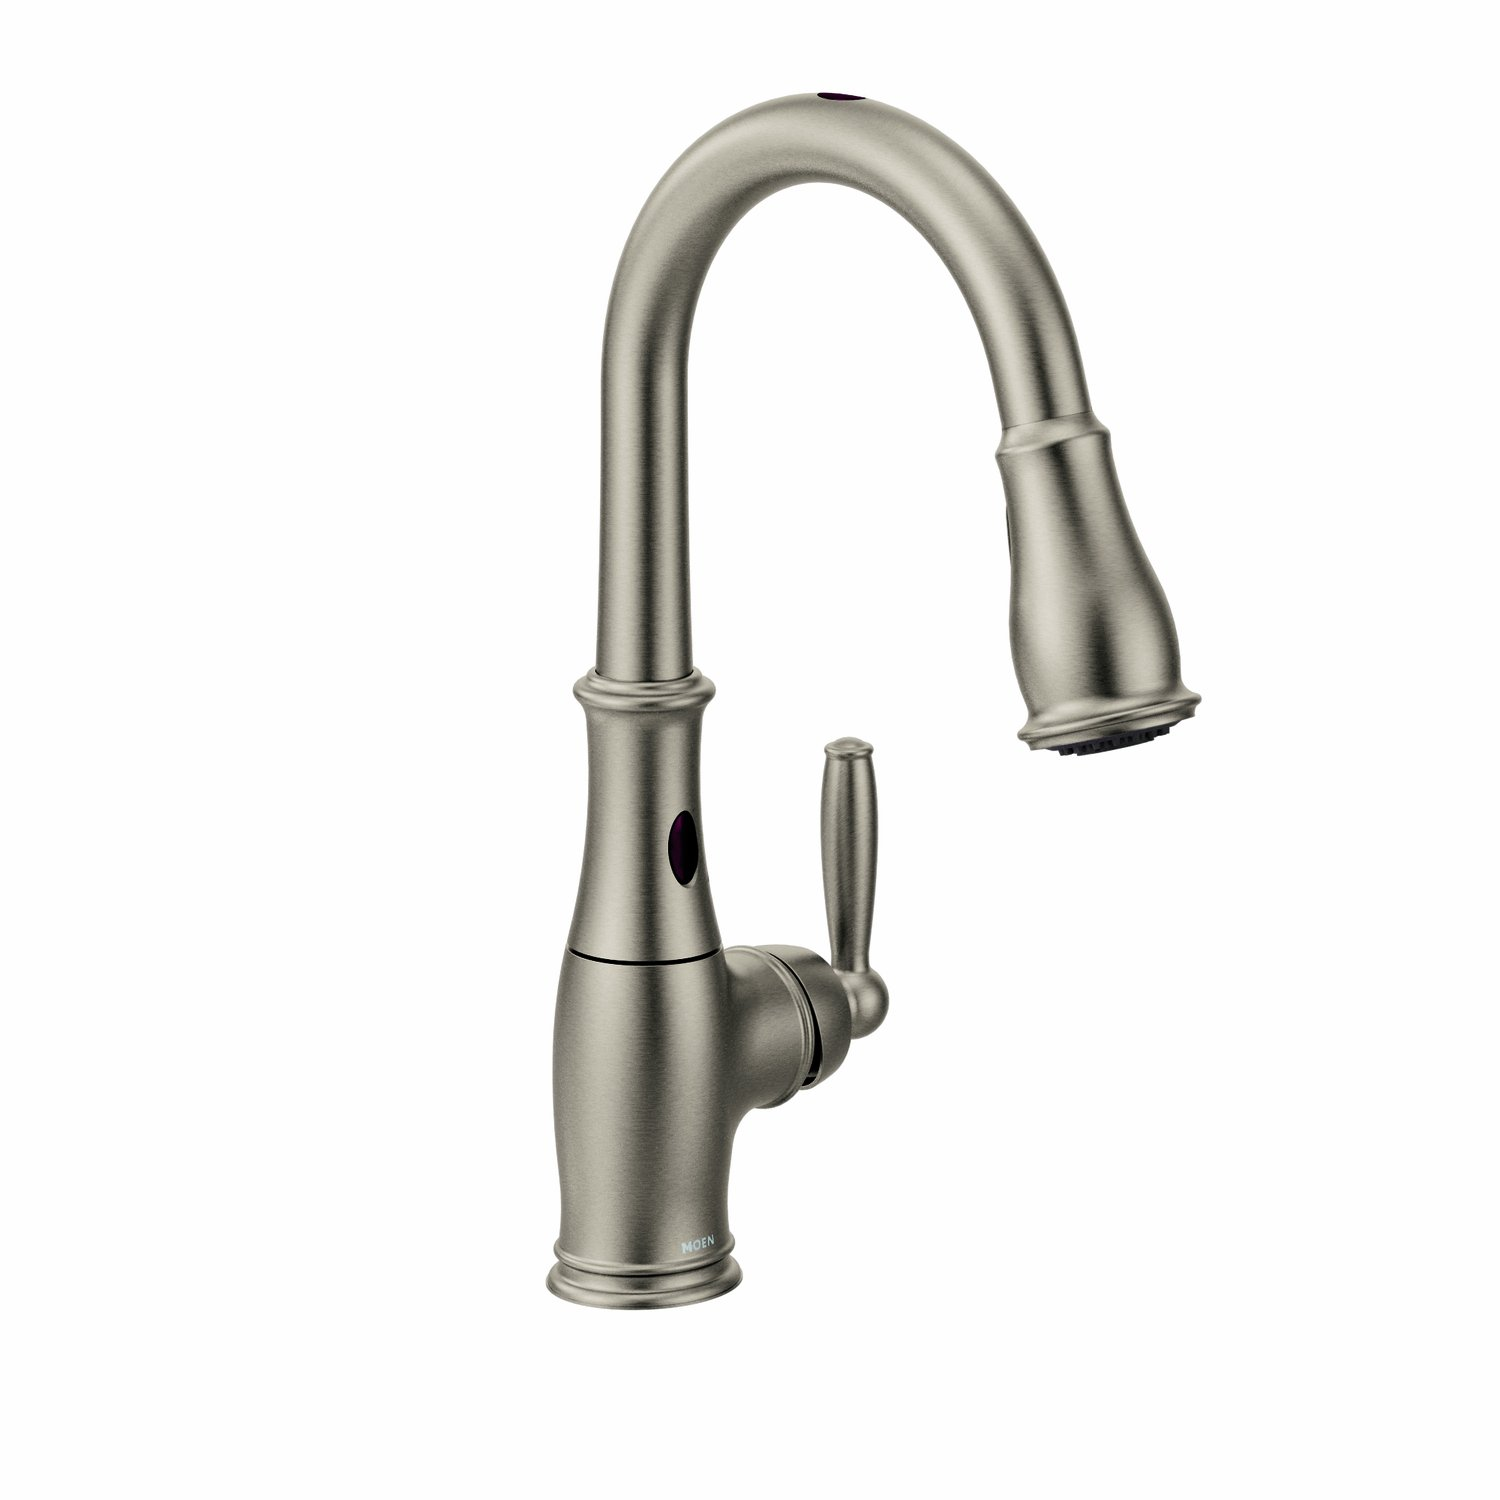 moen brantford motionsense touchless one handle high arc pulldown moen brantford motionsense touchless one handle high arc pulldown kitchen faucet featuring reflex spot resist stainless 7185esrs touch on kitchen sink